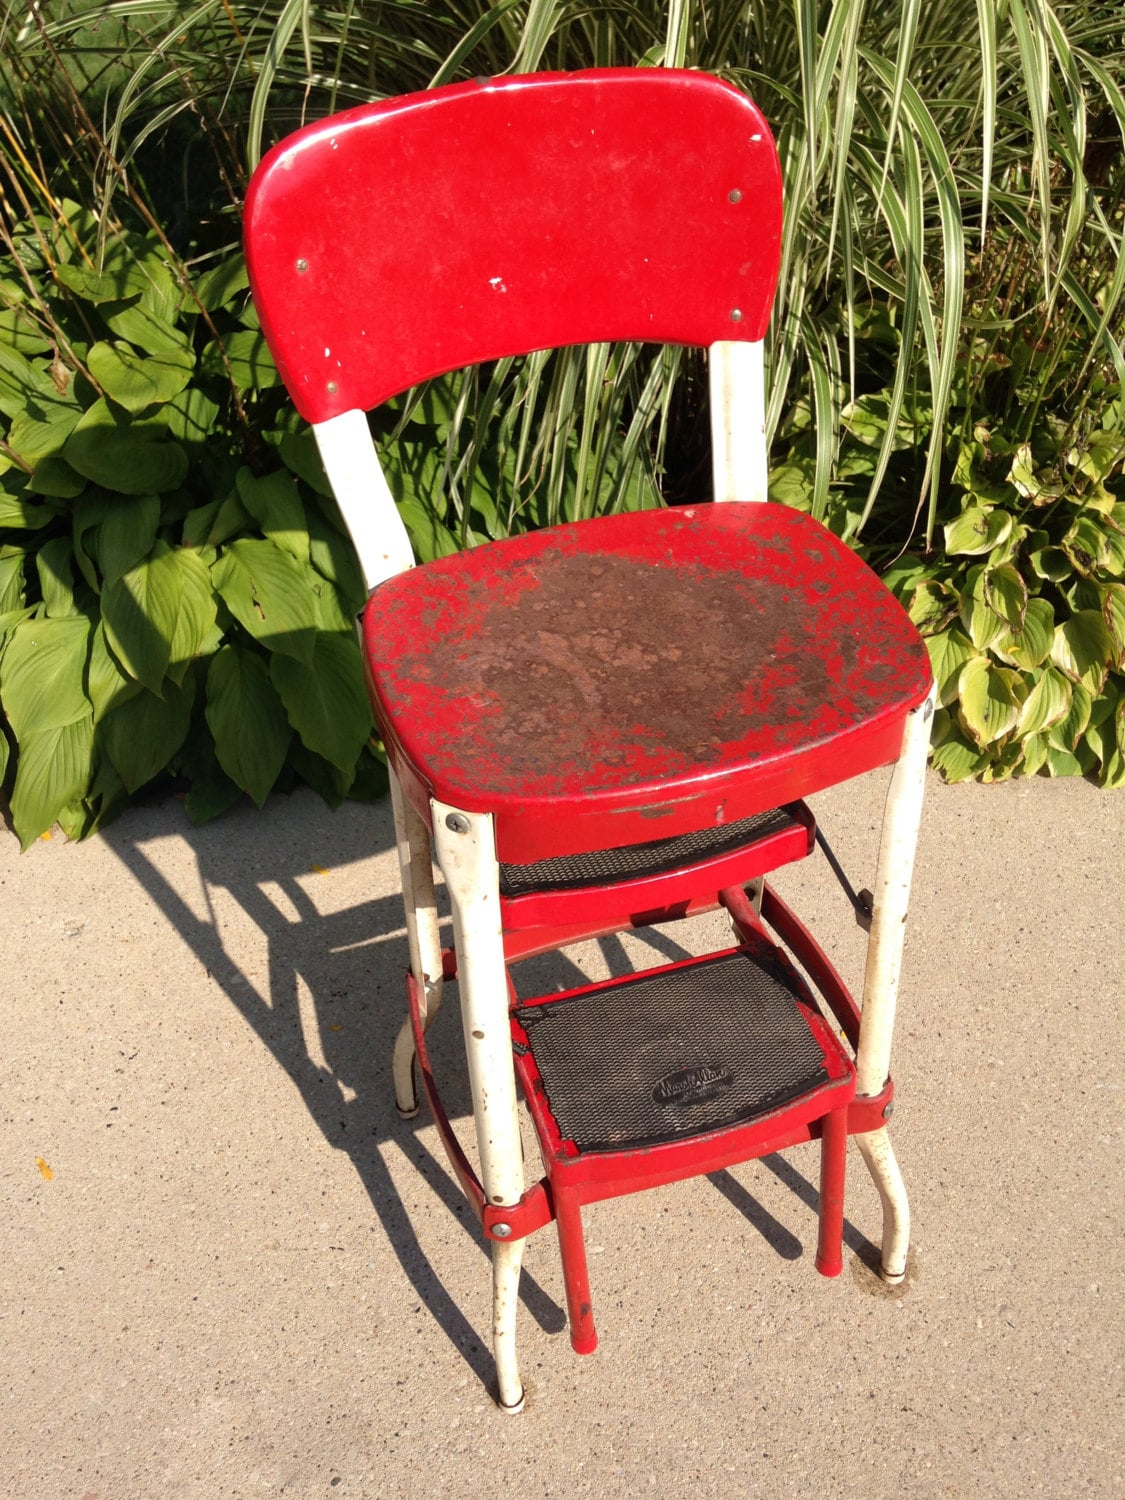 Rare Vintage Marsh Allan Kitchen Step Stool Chair From The